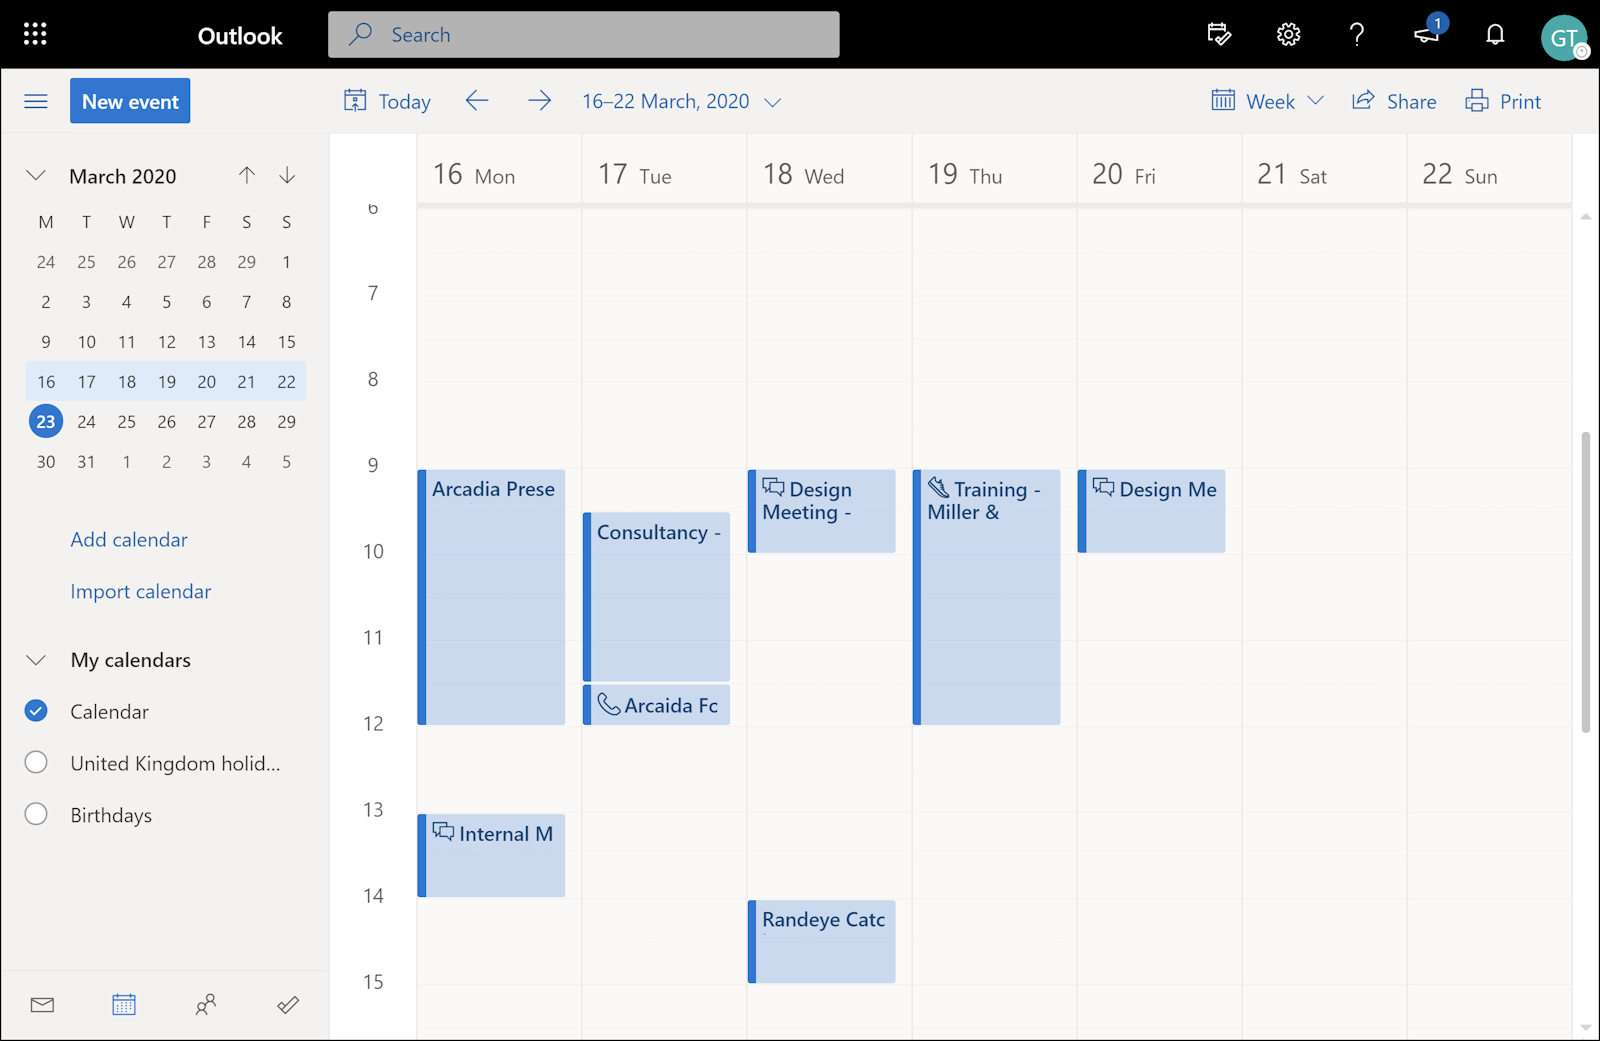 Outlook Calendar to be turned into a timesheet